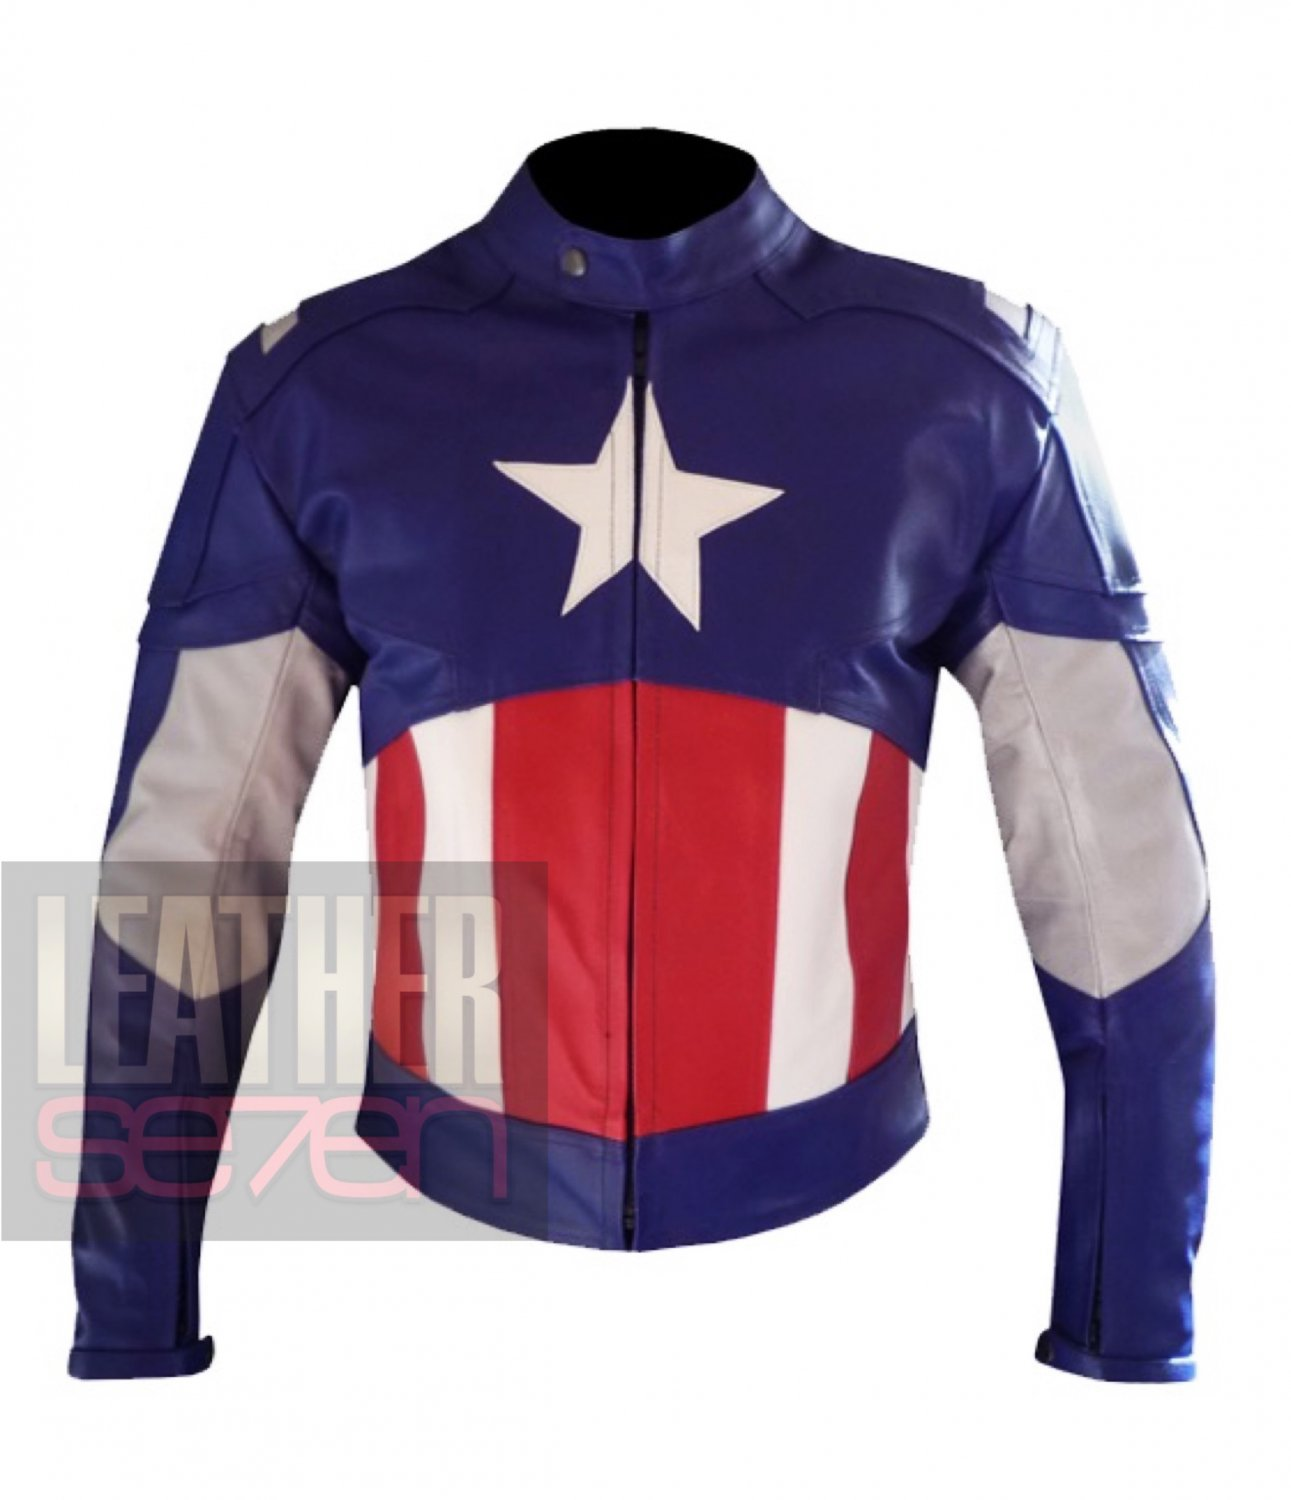 New Captain America Cowhide Leather Motorcycle Safety Jacket For Professional Bikers